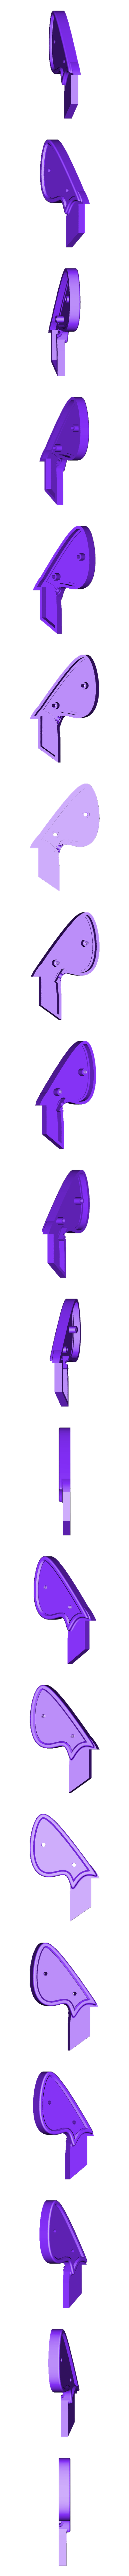 Holow_Handle_1.stl Download free STL file Raygun • 3D print template, cmoore1